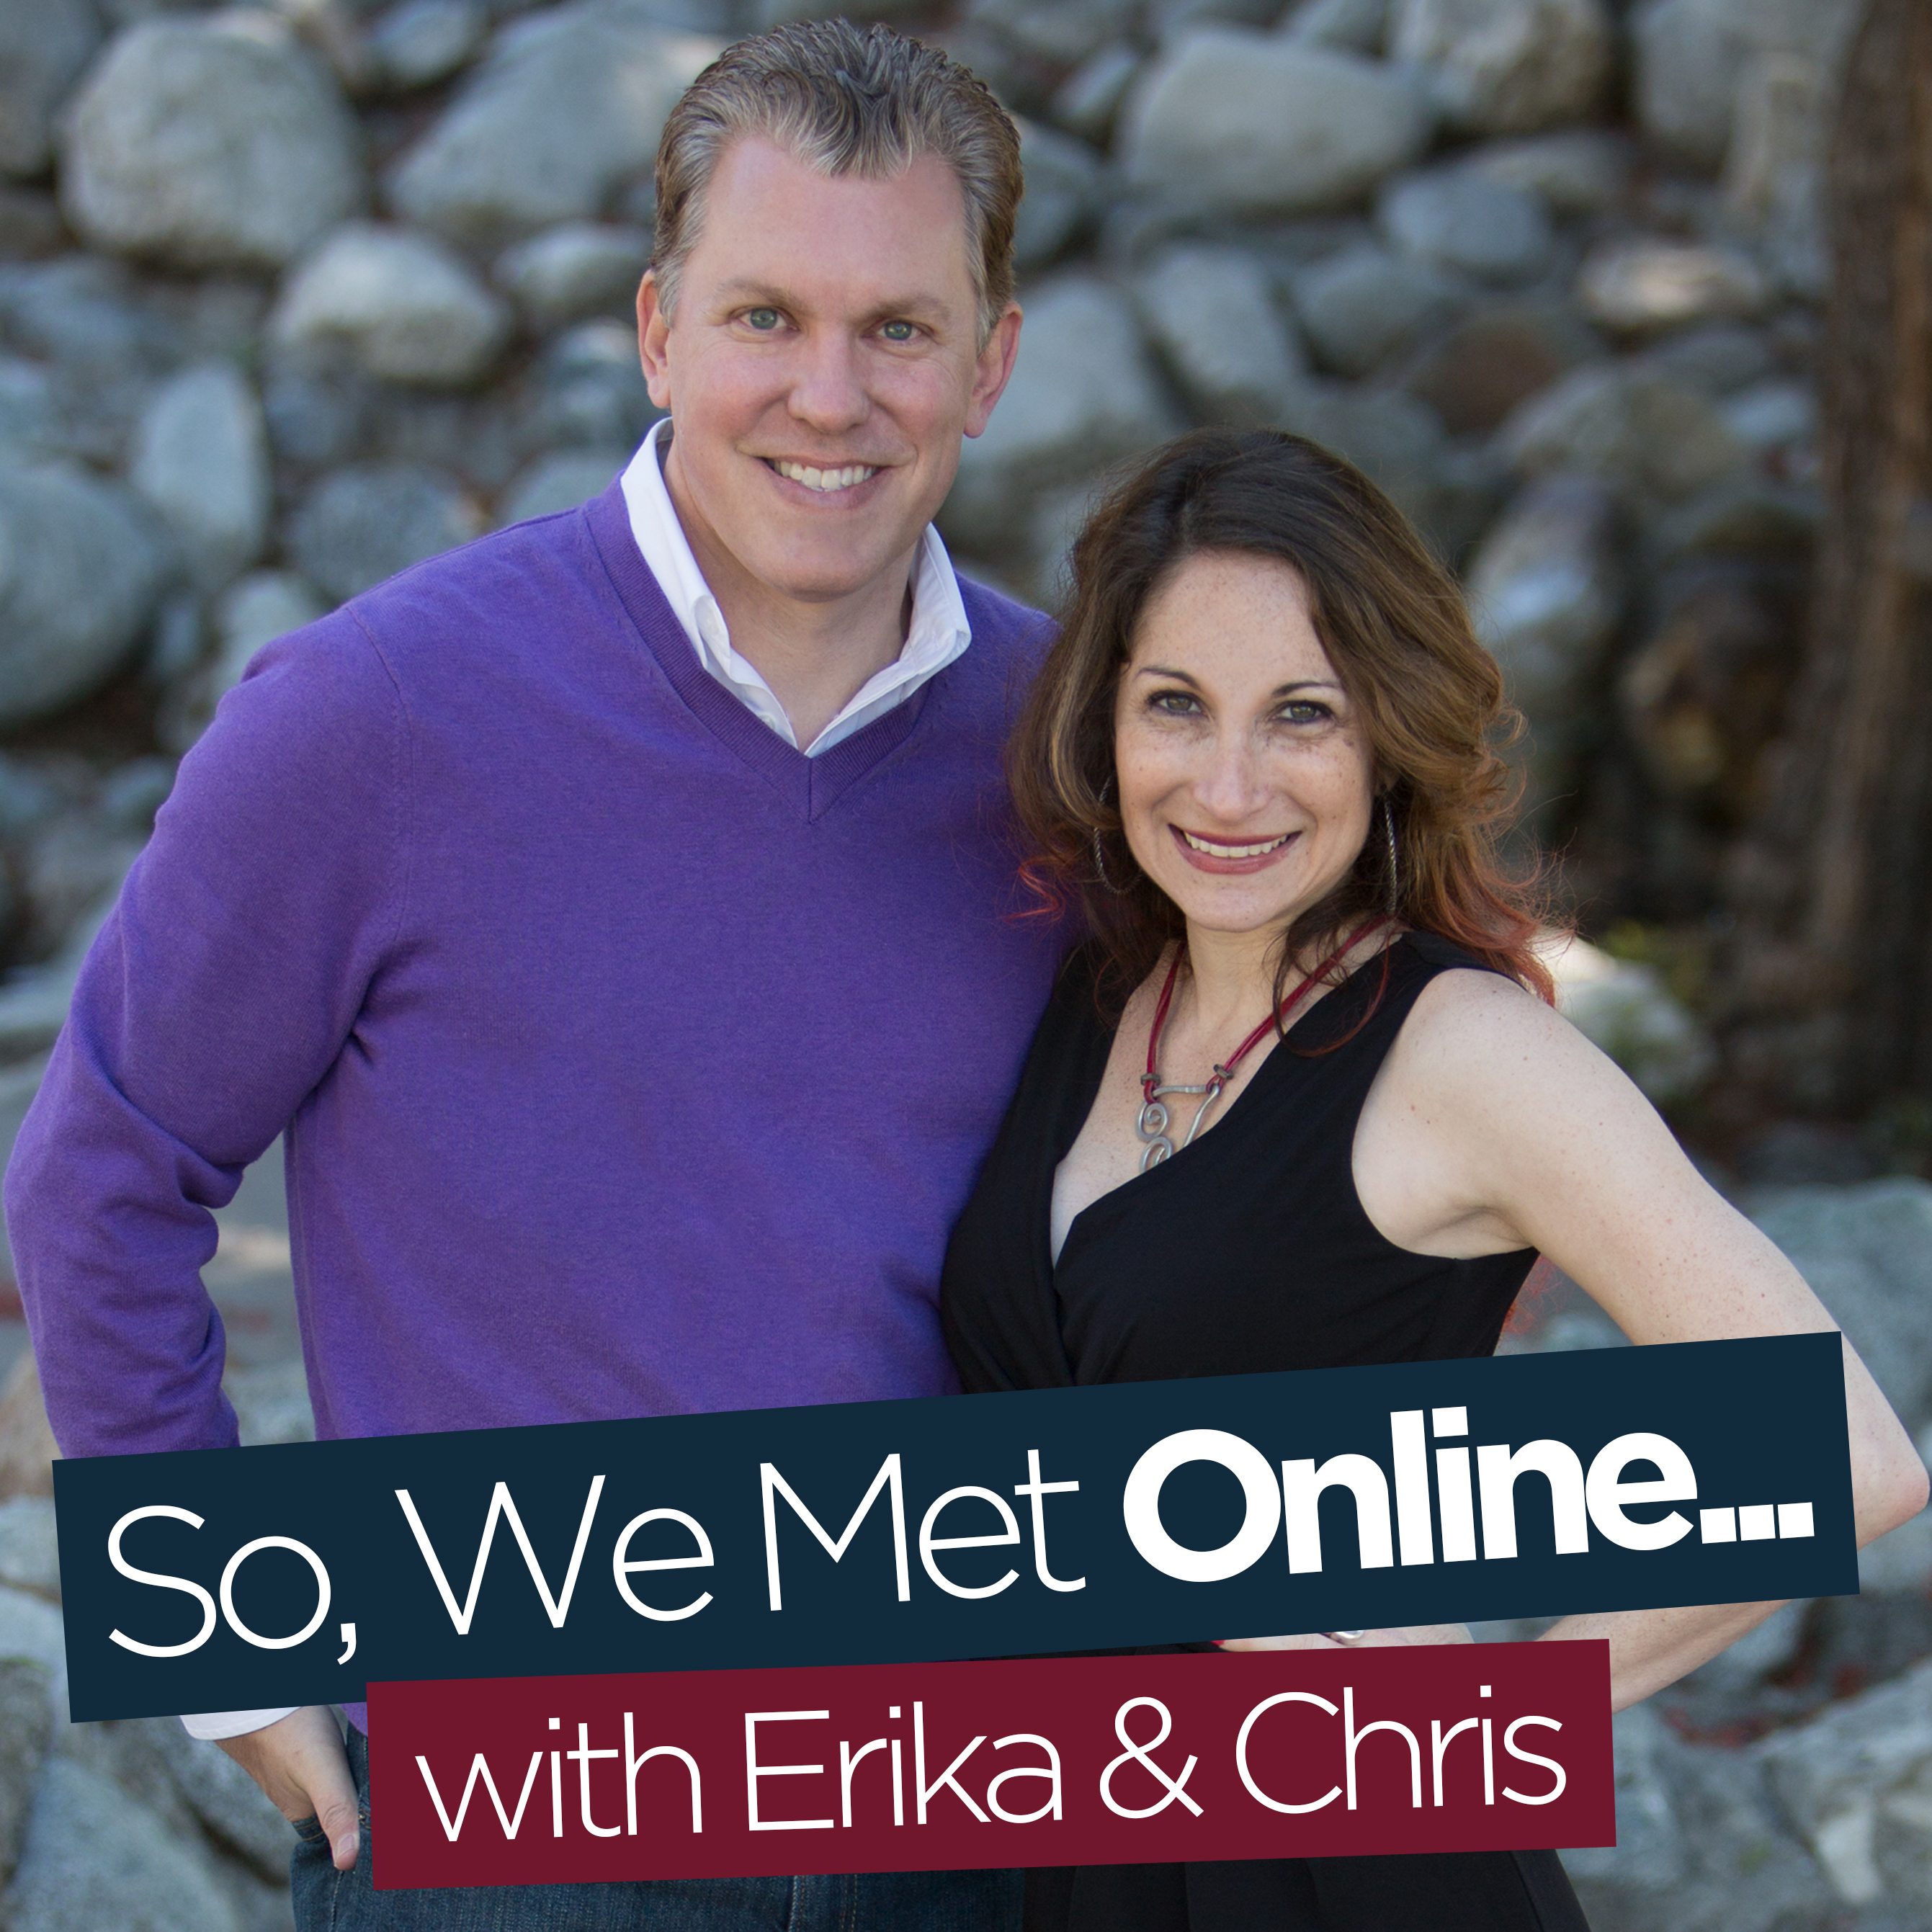 So, We Met Online…